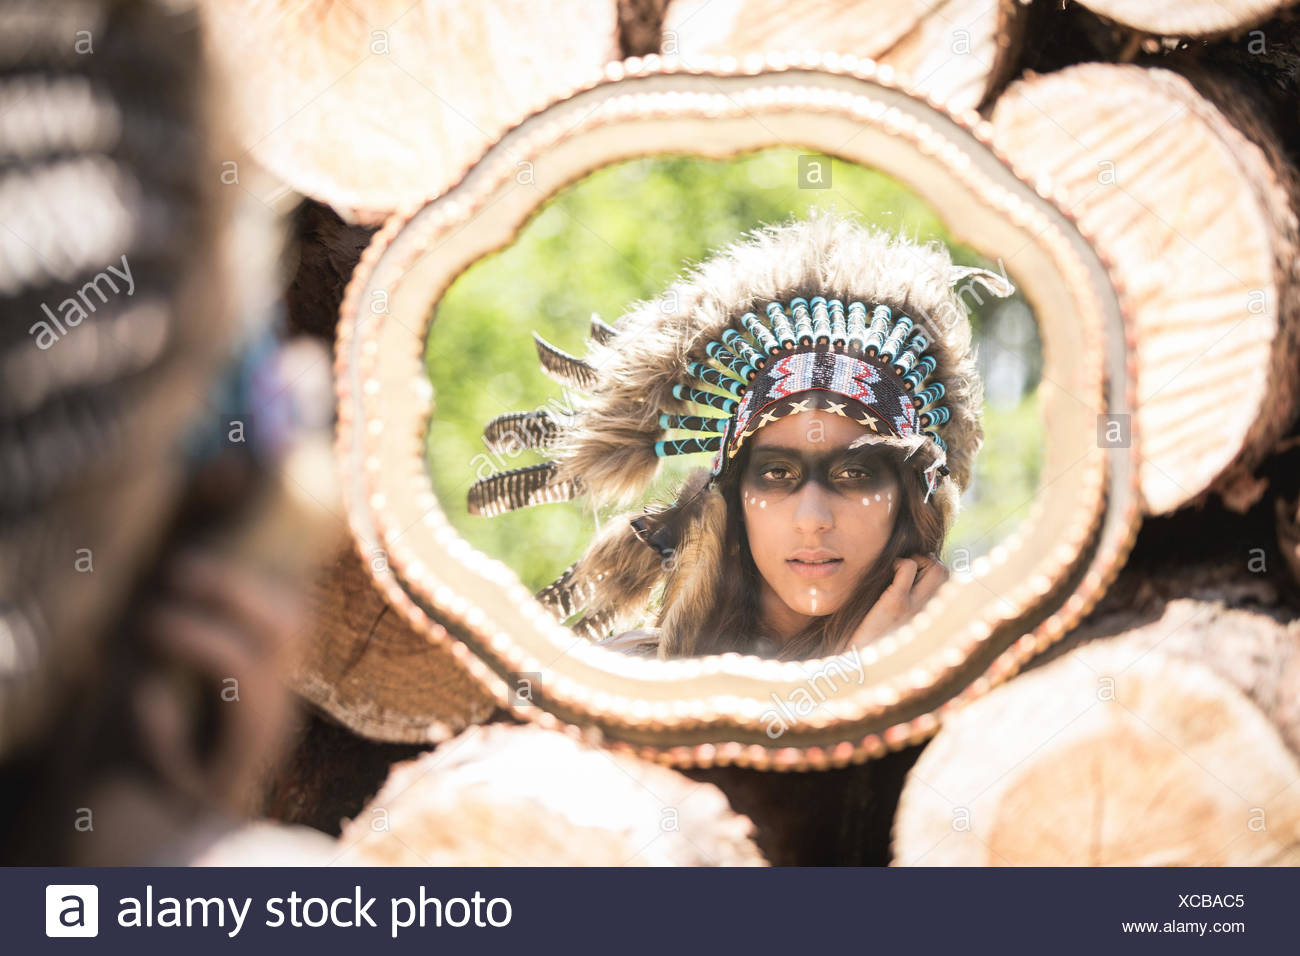 Mirror image of young woman masquerade as an Indian - Stock Image